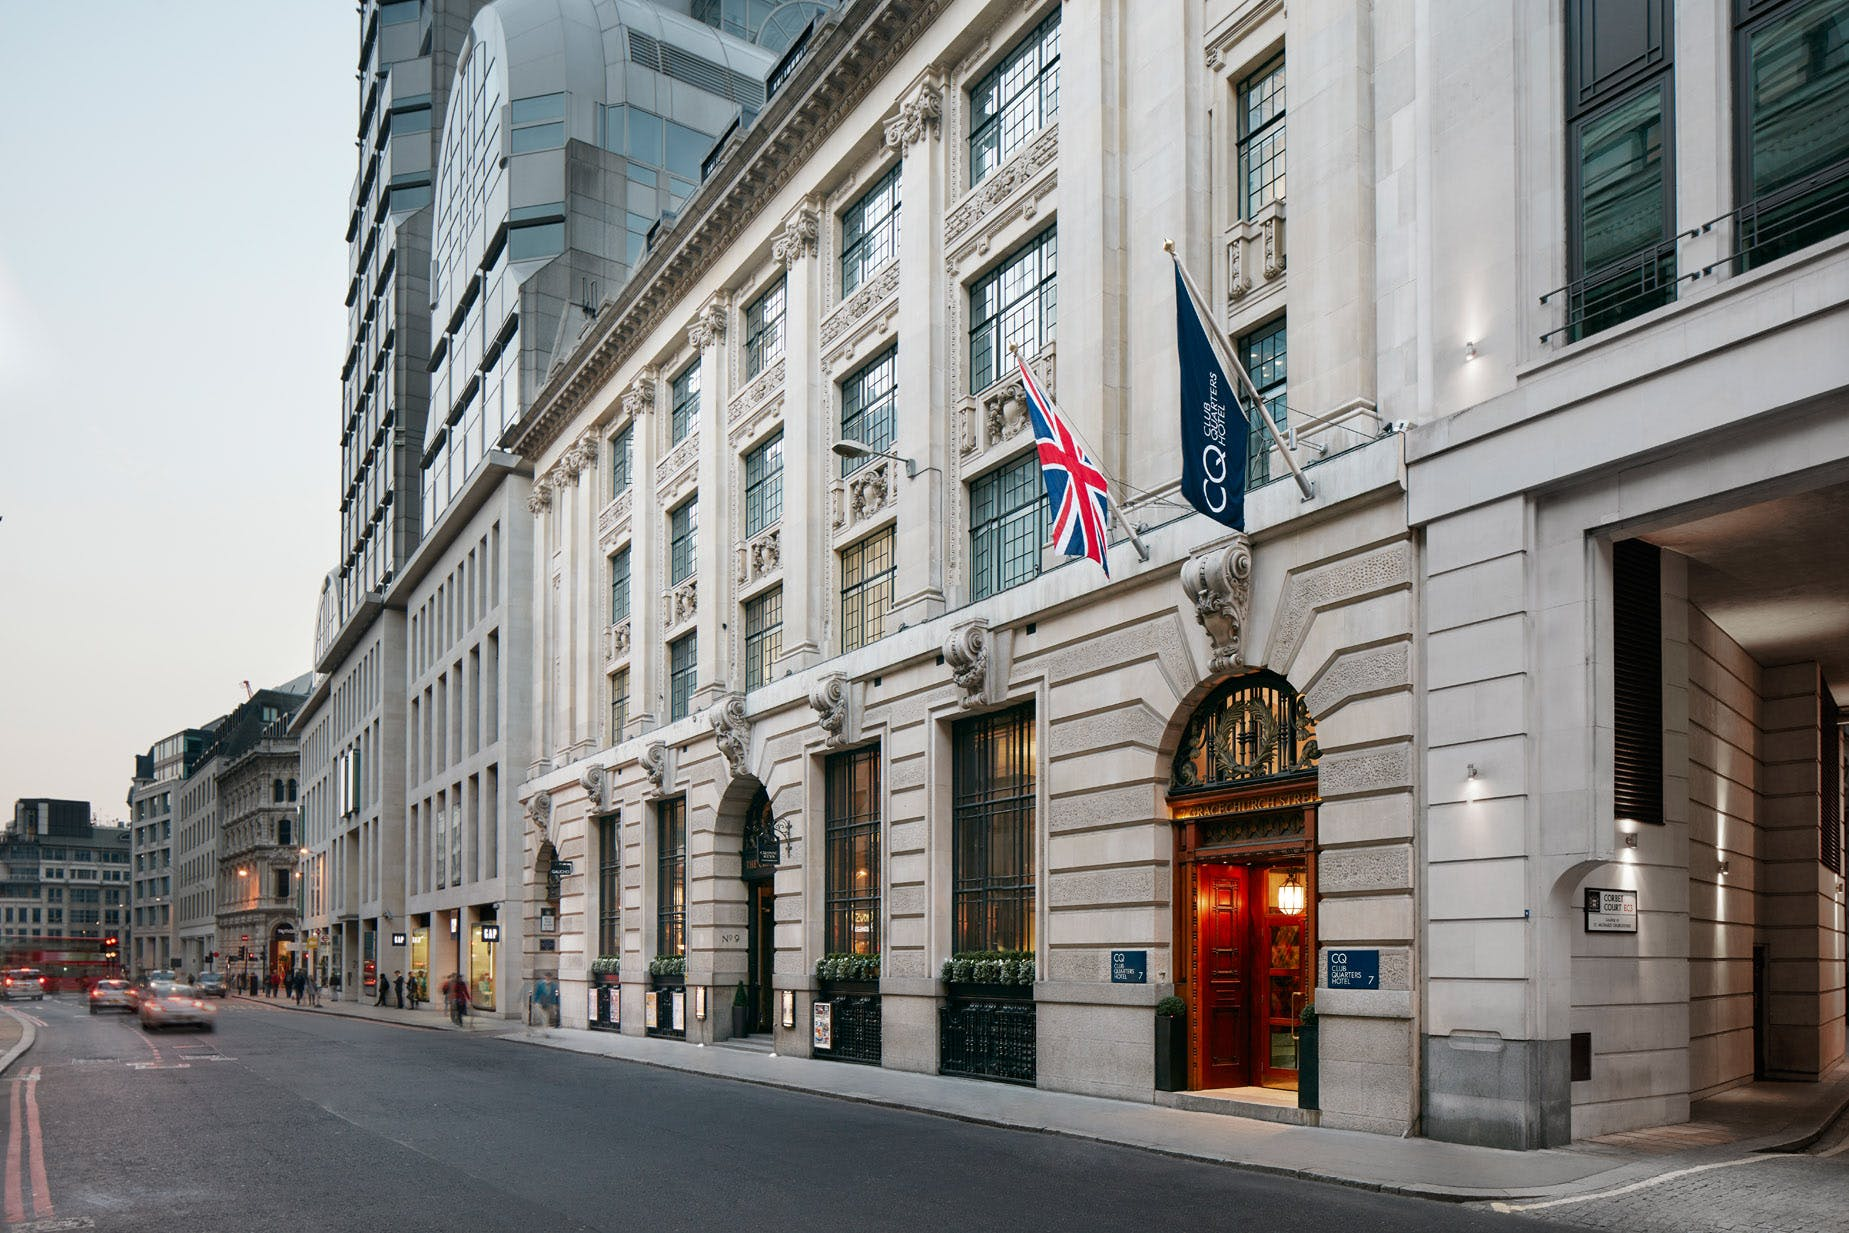 Exterior of Club Quarters Hotel, Gracechurch, London